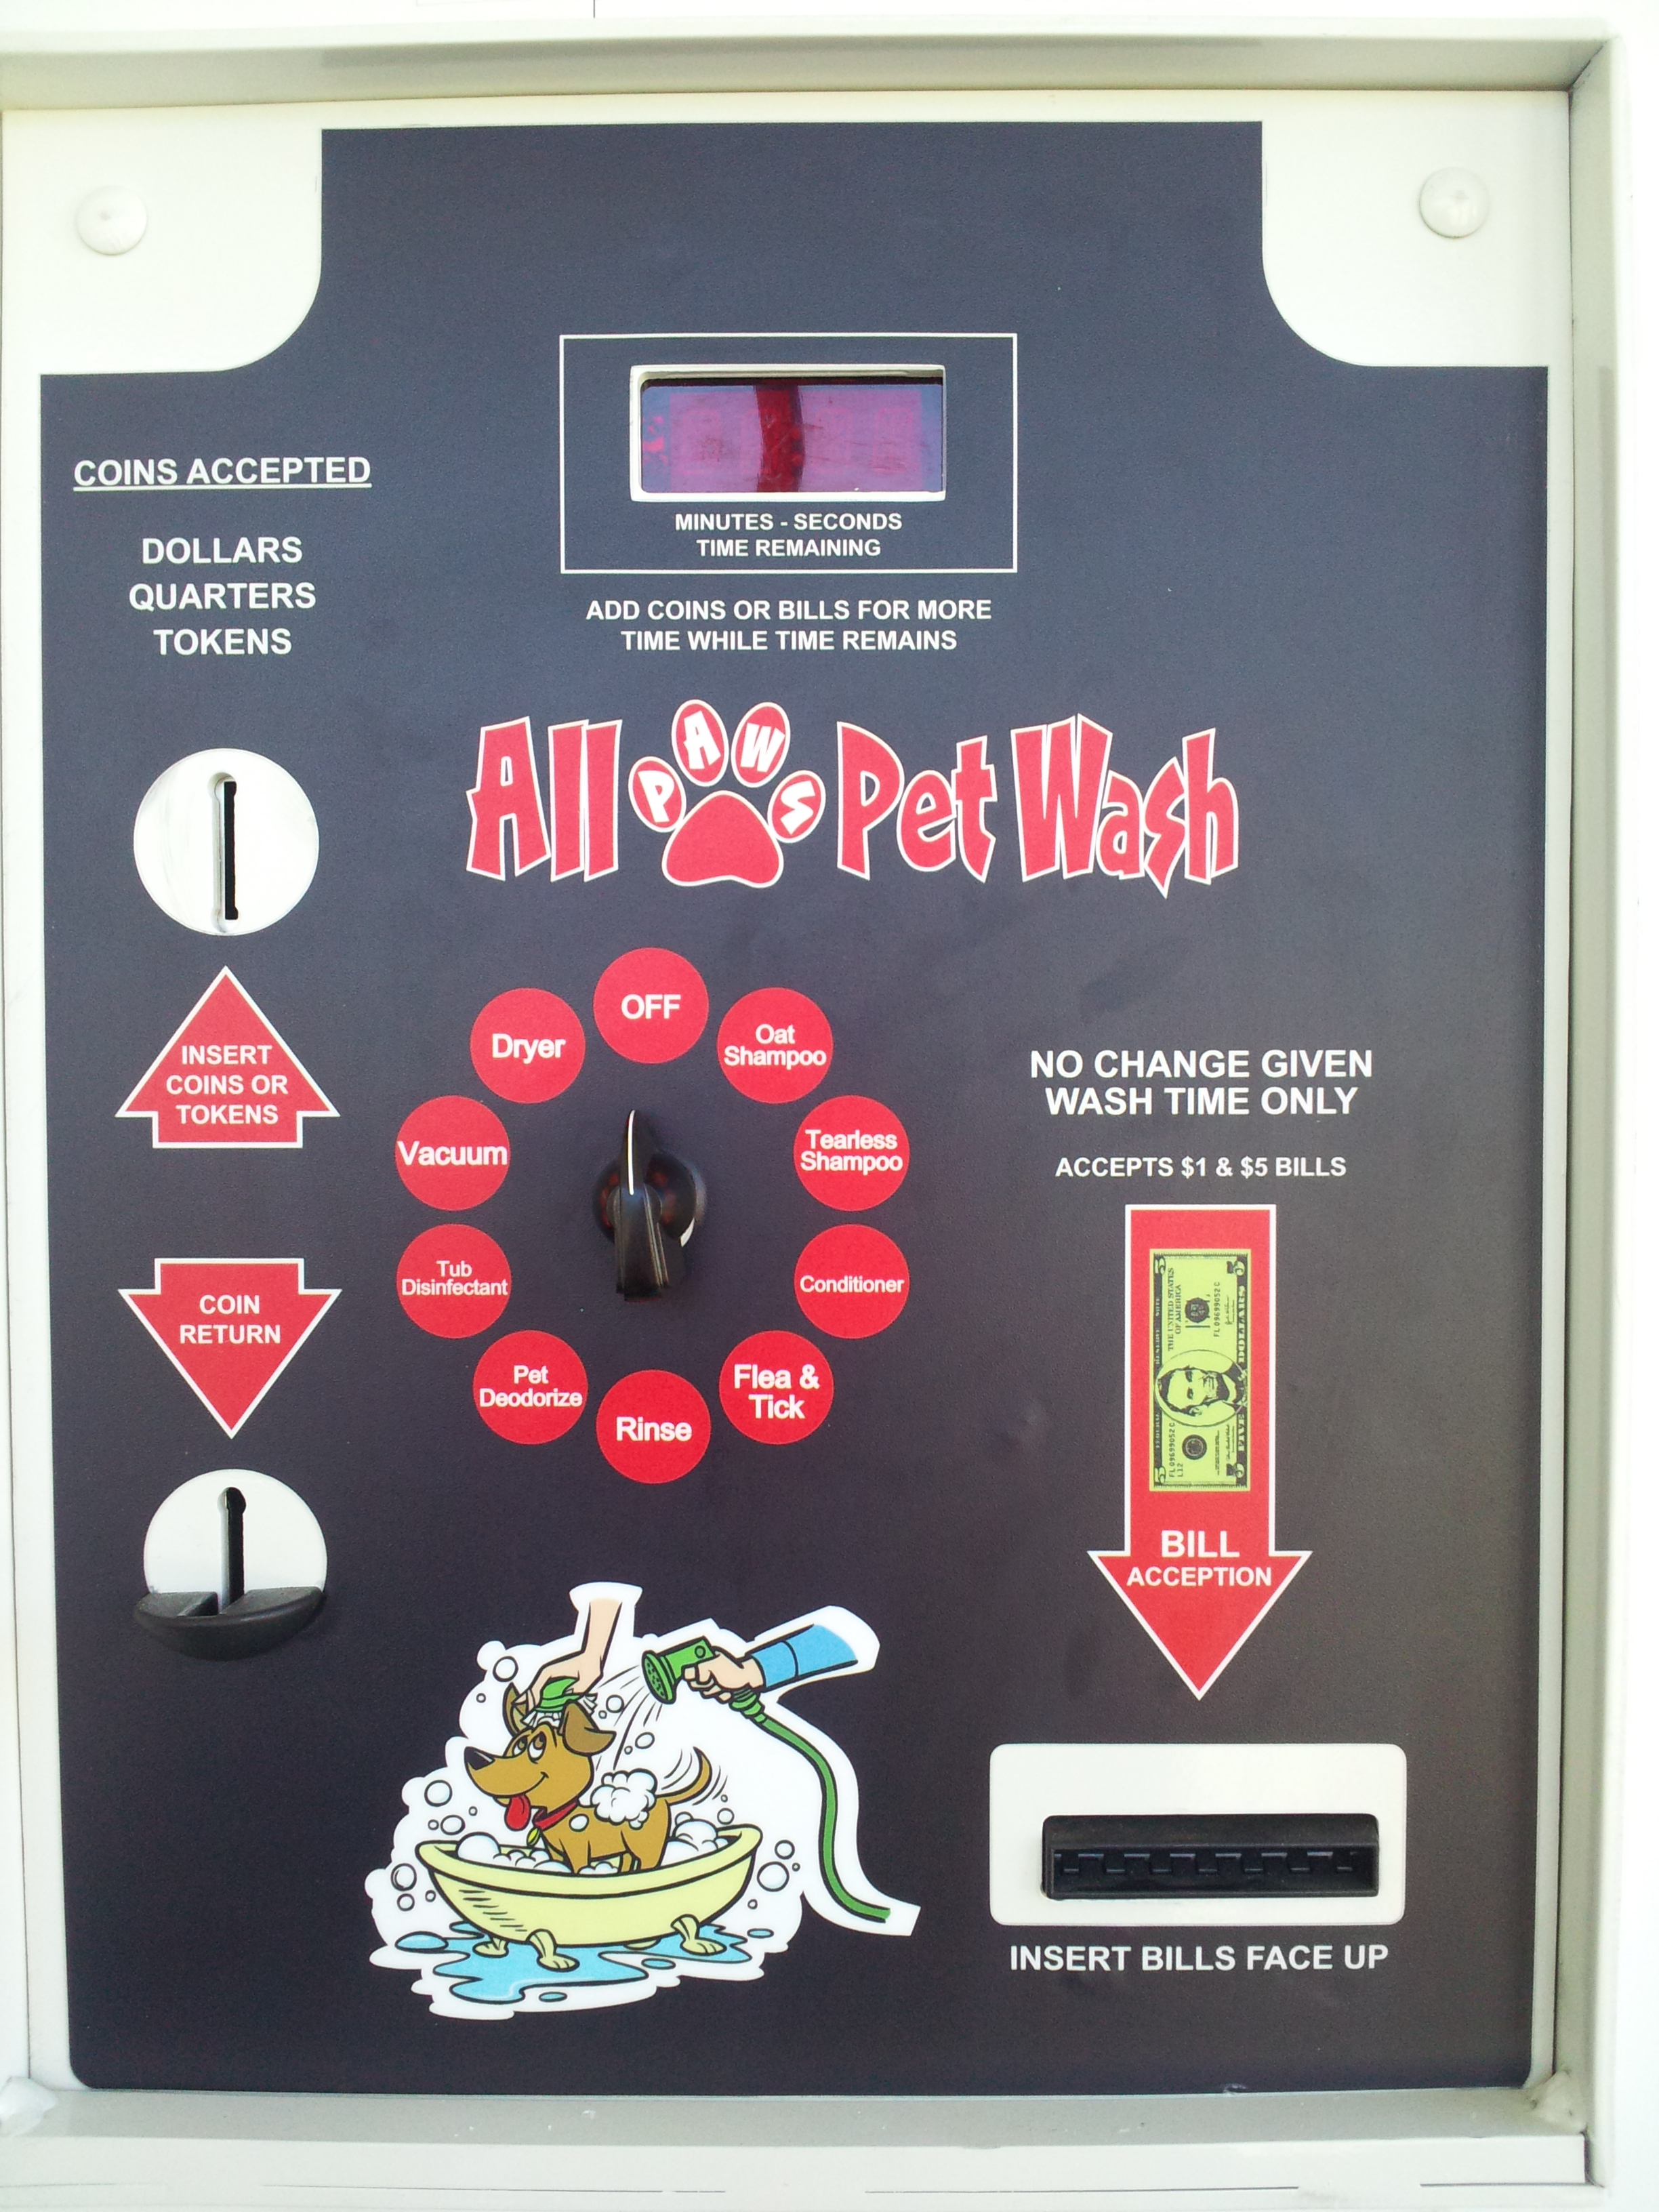 Car wash pet wash dog bath stations pet wash installations all coin operated dog wash payment options 2011 08 16 095838 self solutioingenieria Images